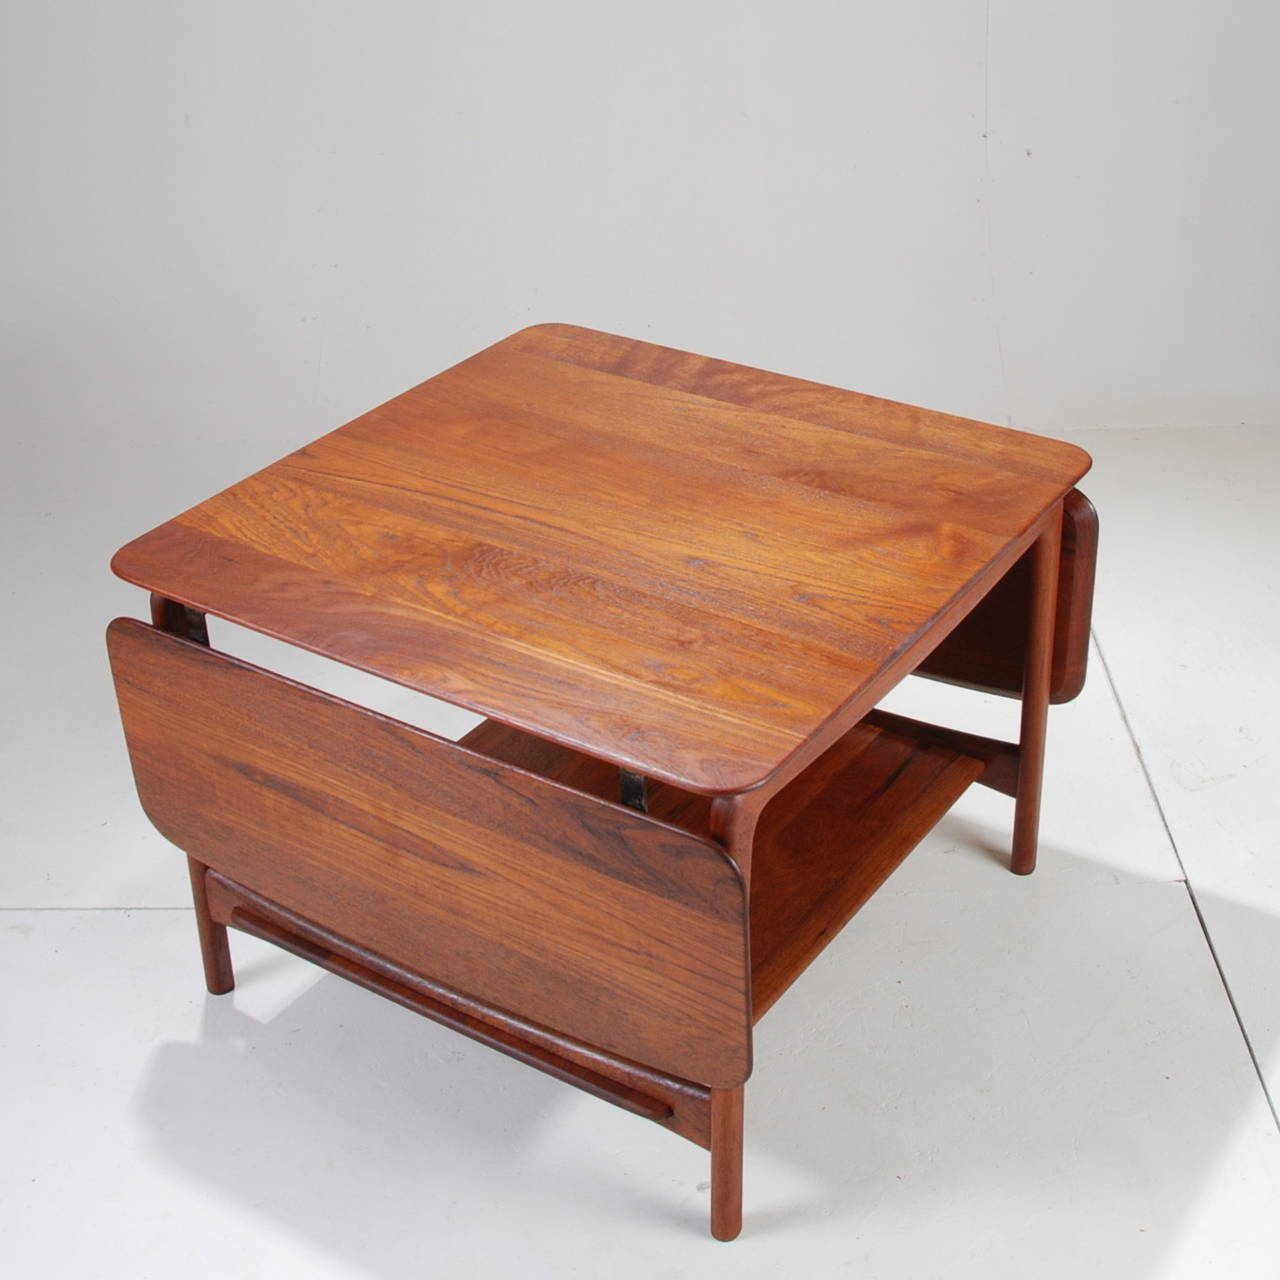 This Is A Solid Teak Master Piece By Peter Hvidt For John Stuart The Drop